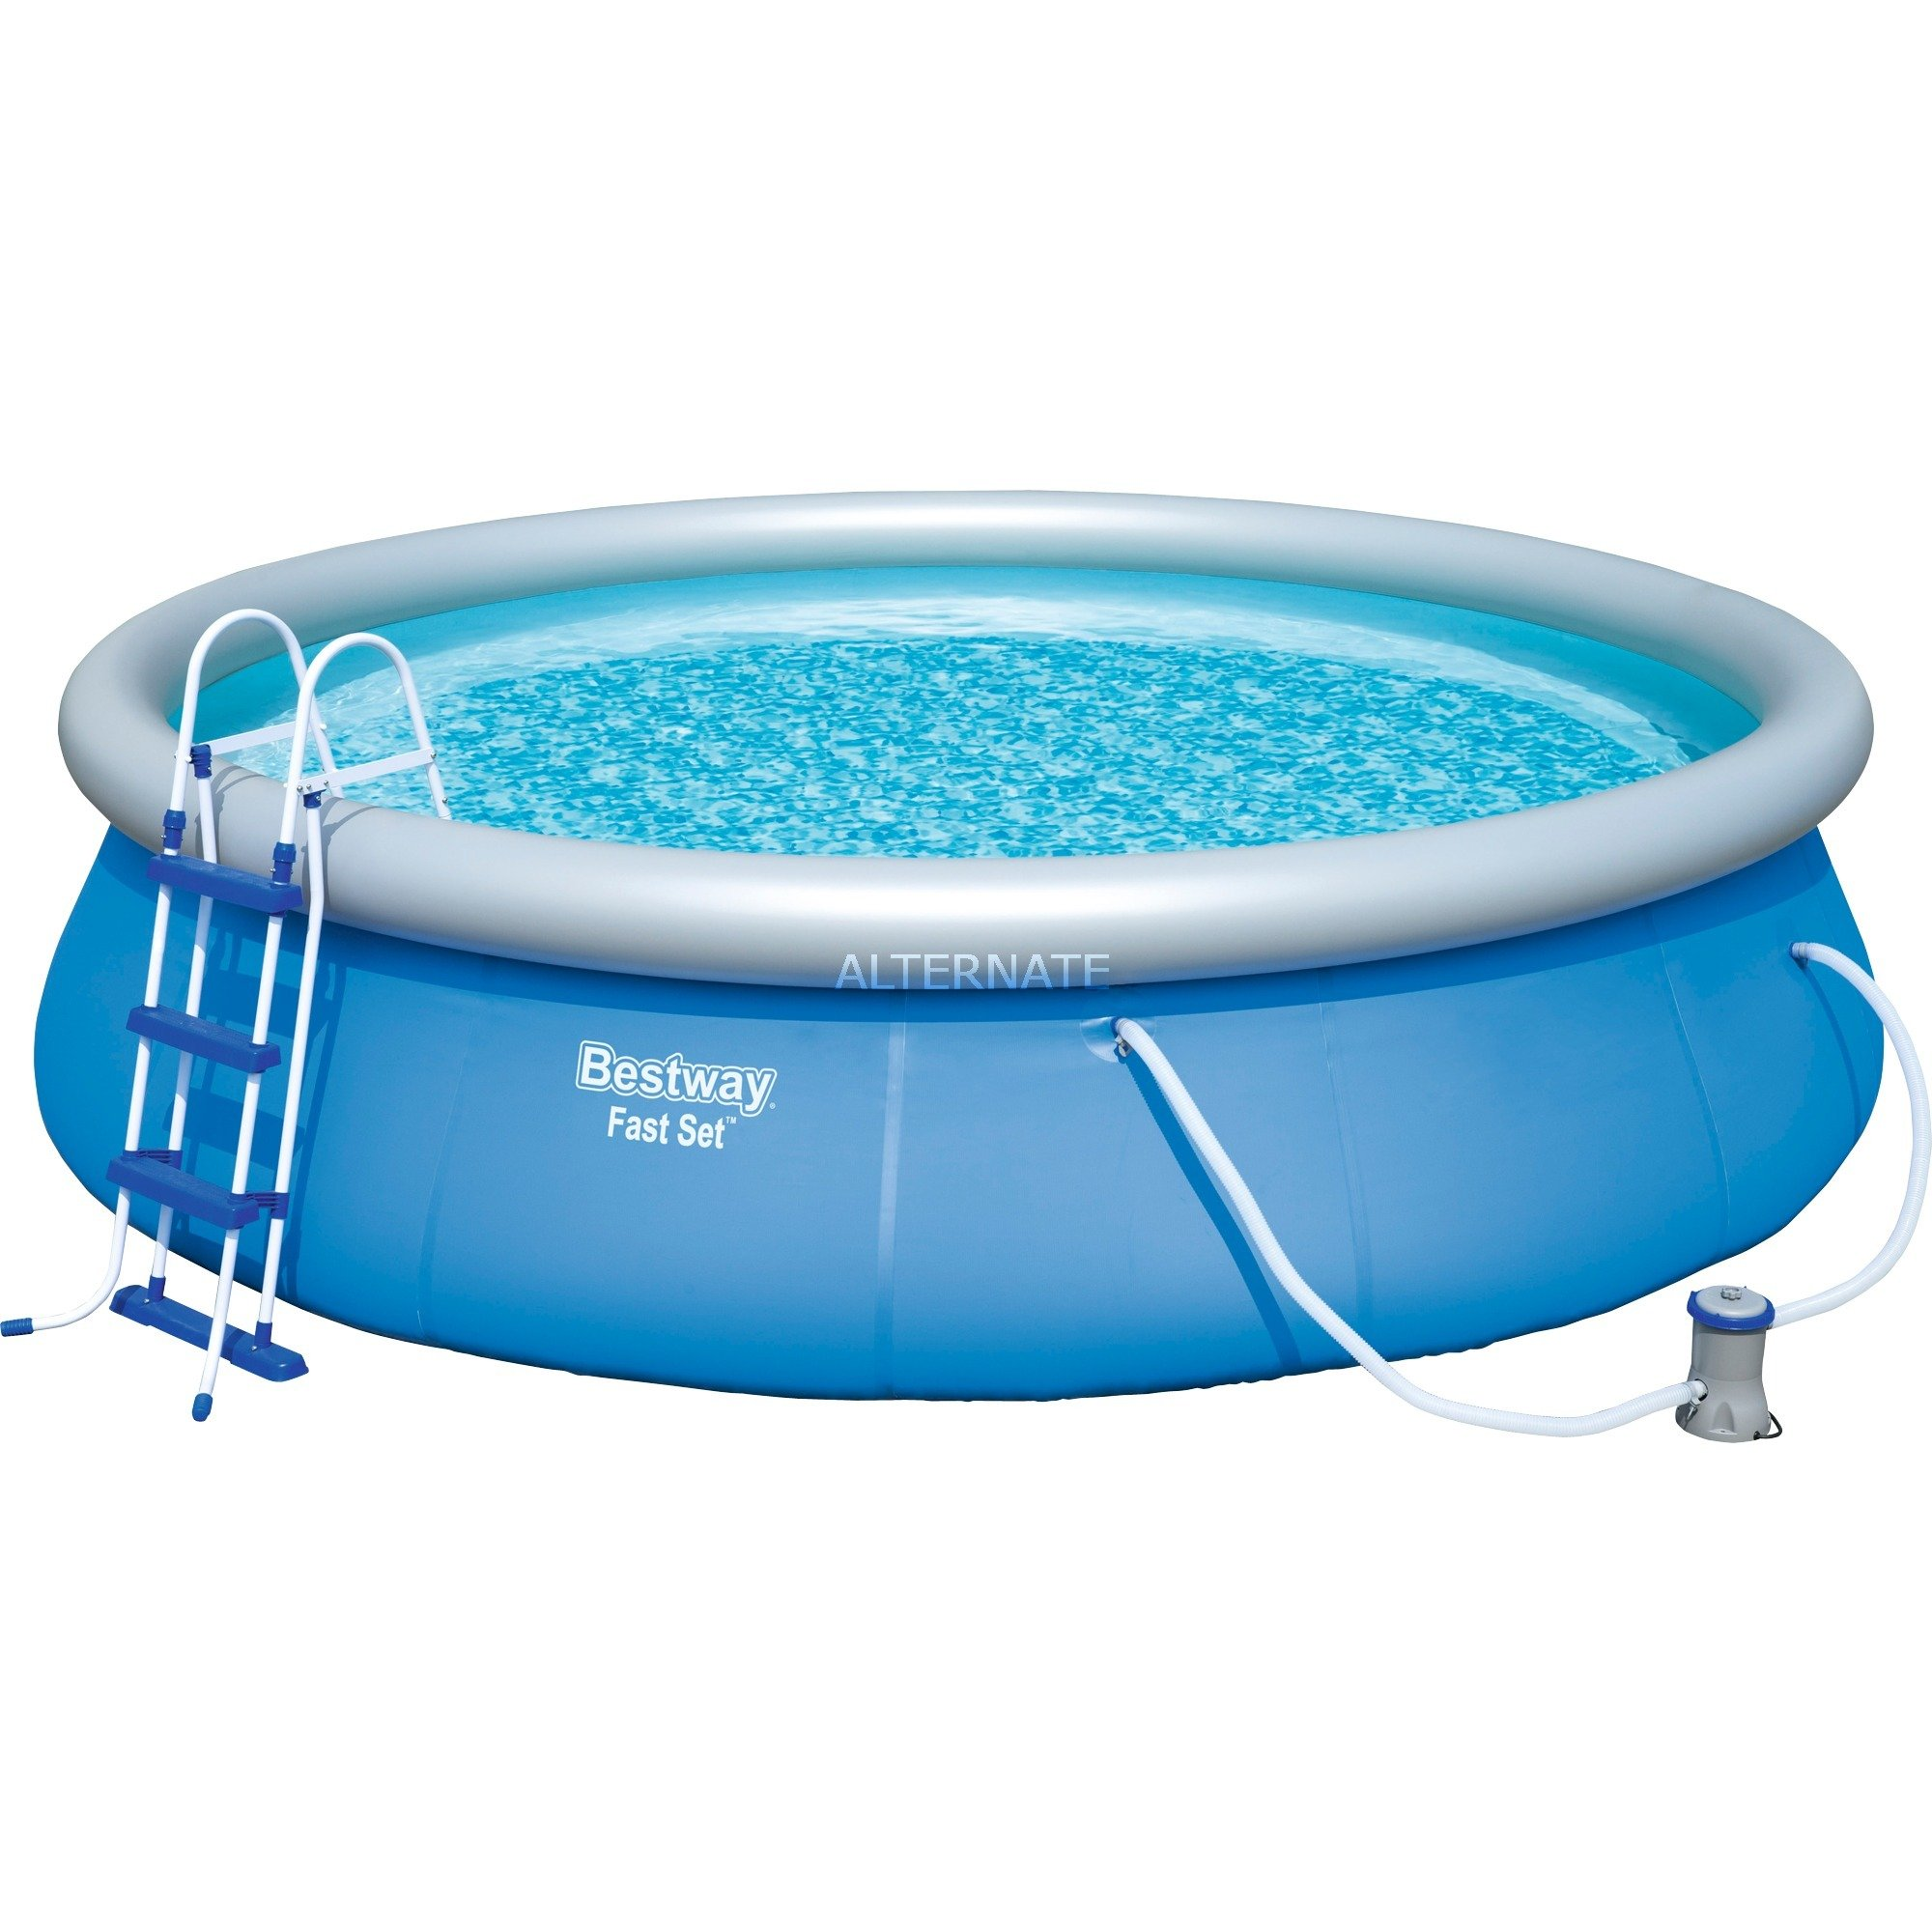 Termometro termometro piscina sport shopping for Obi intex pool